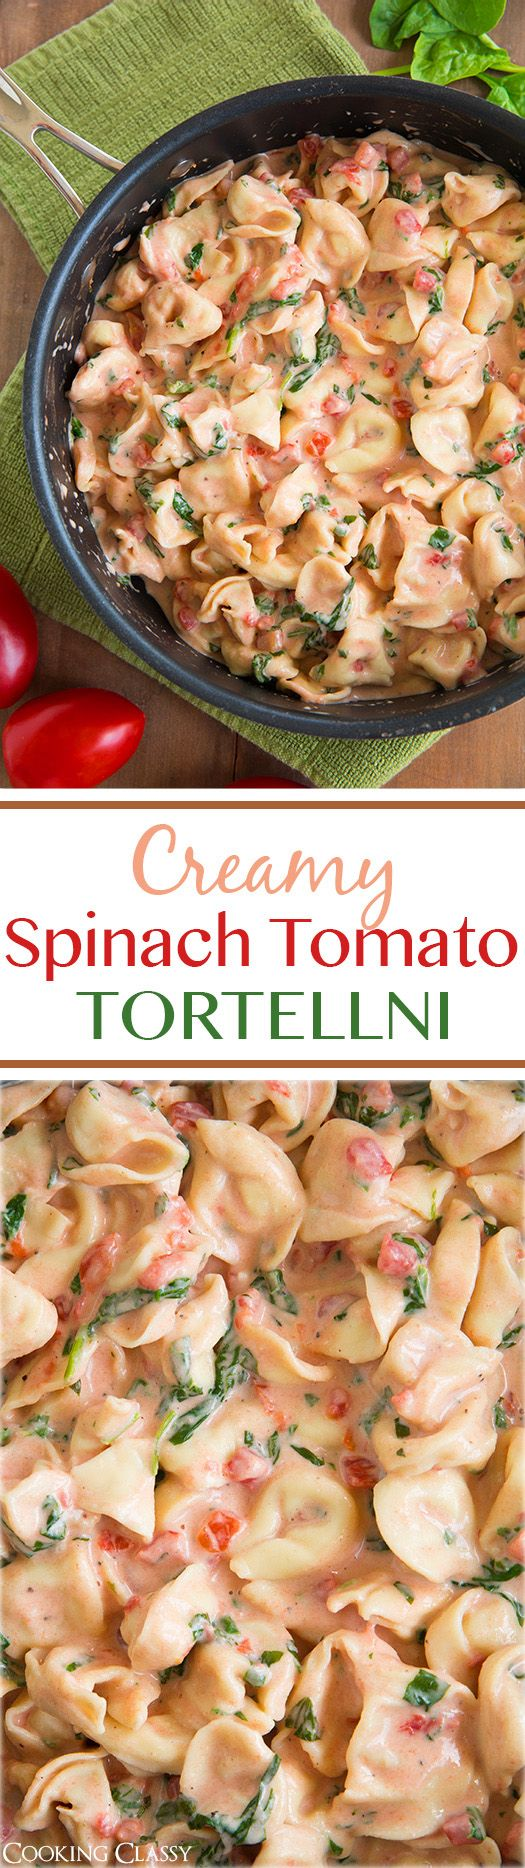 Spinach Tortellini Spinach   Tortellini  sneakers max   and exclusive Tomatoes    Tomato Creamy Recipe air